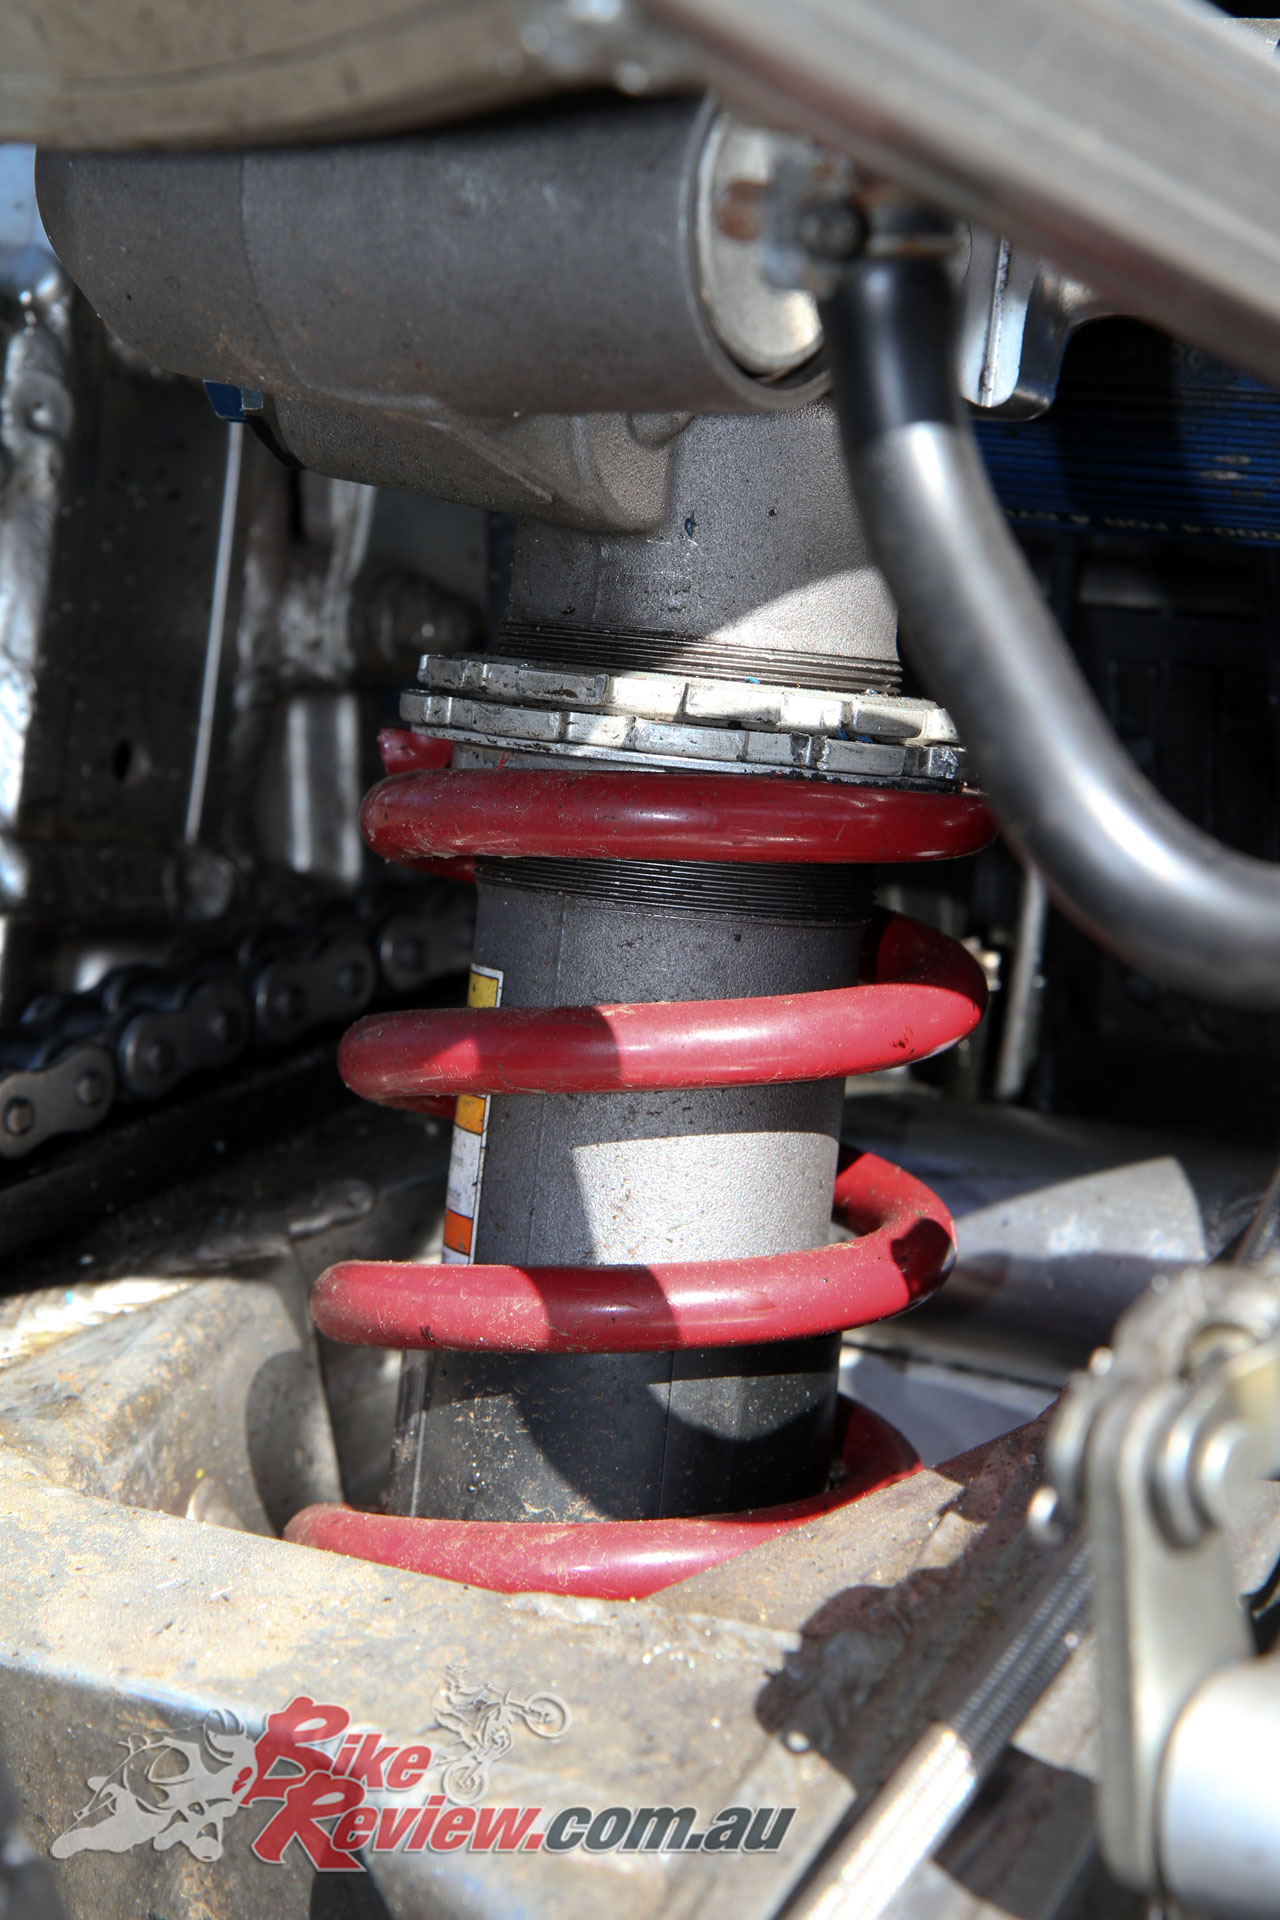 A later generation GSX-R shock was fitted for greater adjustability